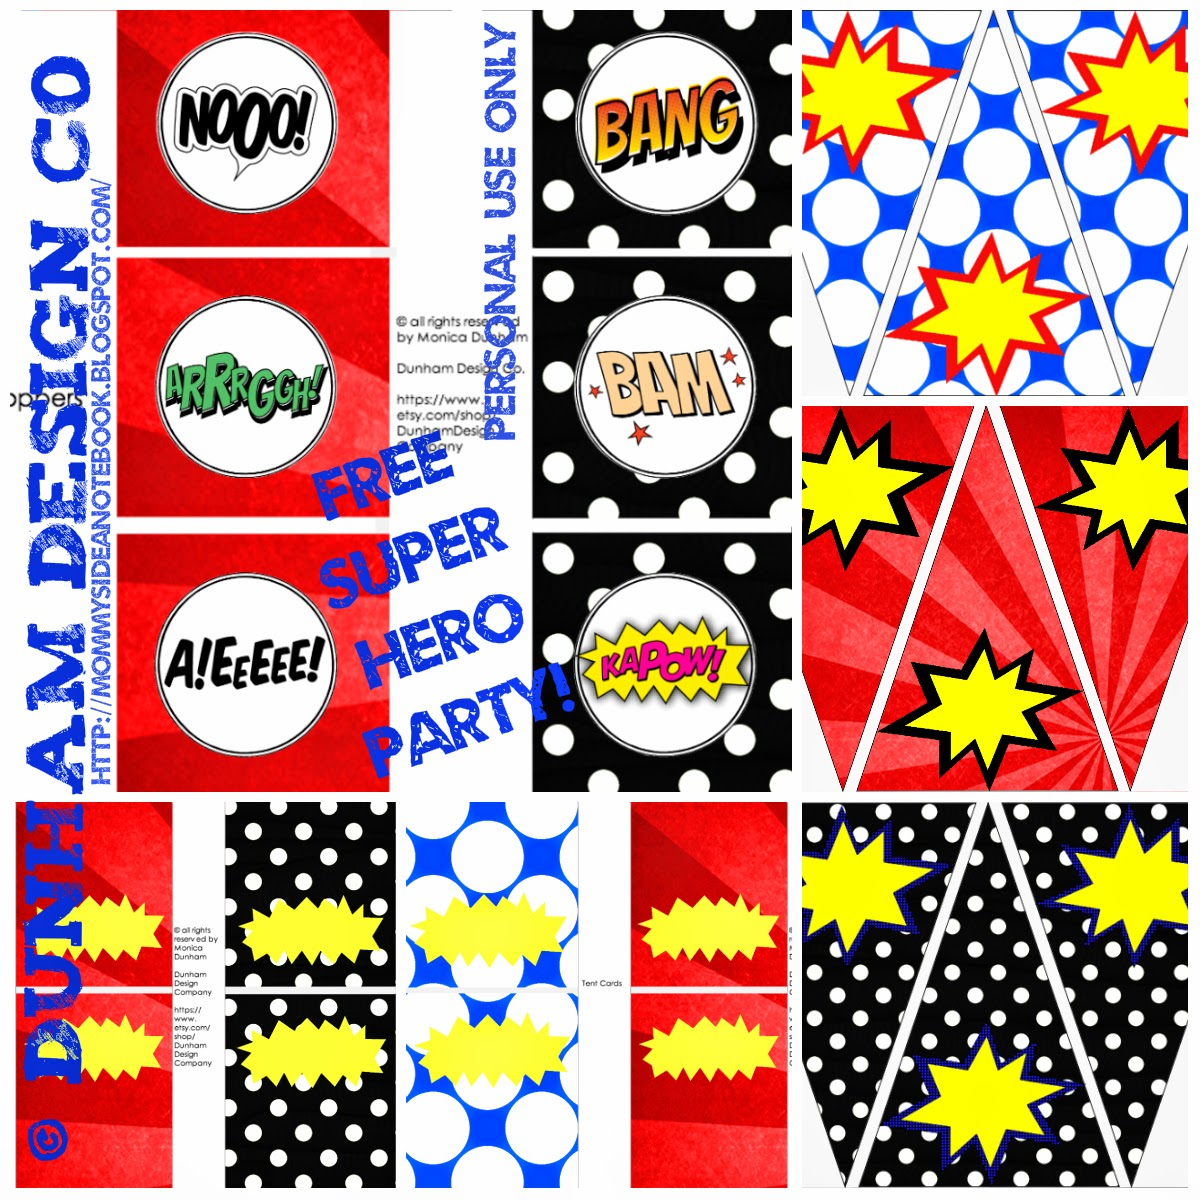 photo about Free Superhero Party Printable identified as Dunham Layout Business: Cost-free Superhero Occasion Printable Coming